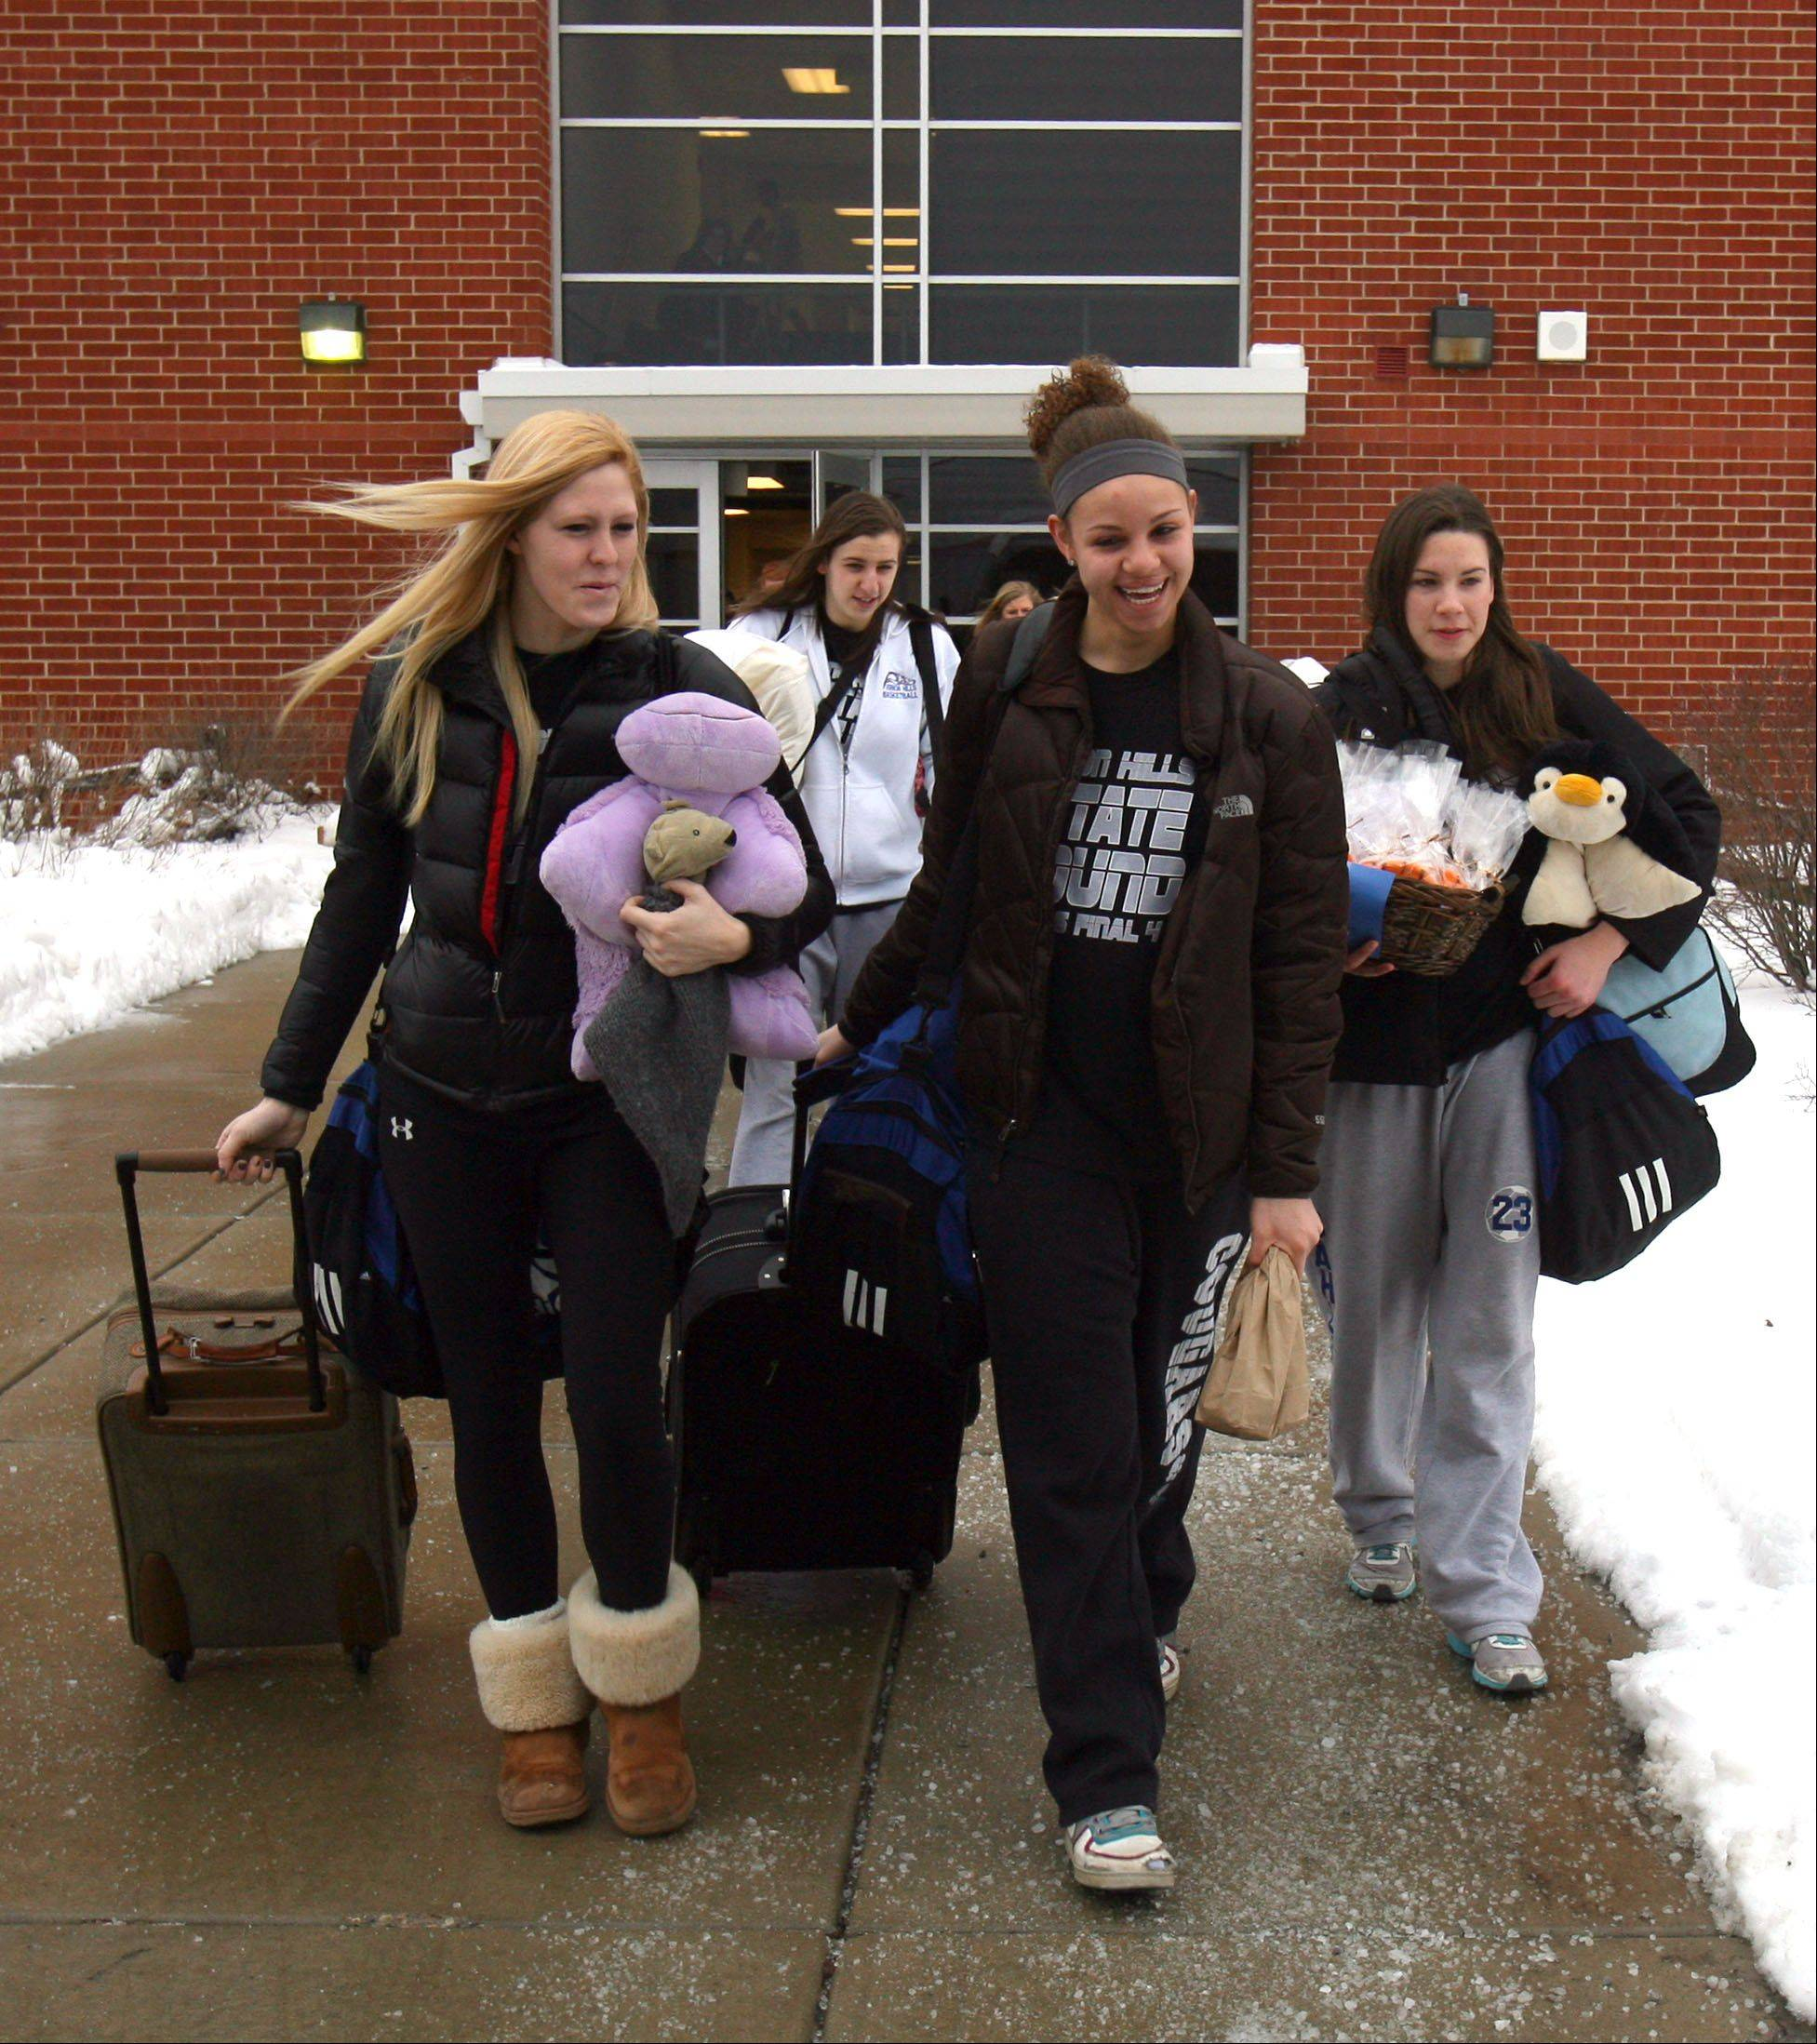 The Vernon Hills High School's girls basketball team heads to the bus that will take them to the Class 3A girls state basketball tournament at Redbird Arena in Normal this weekend.